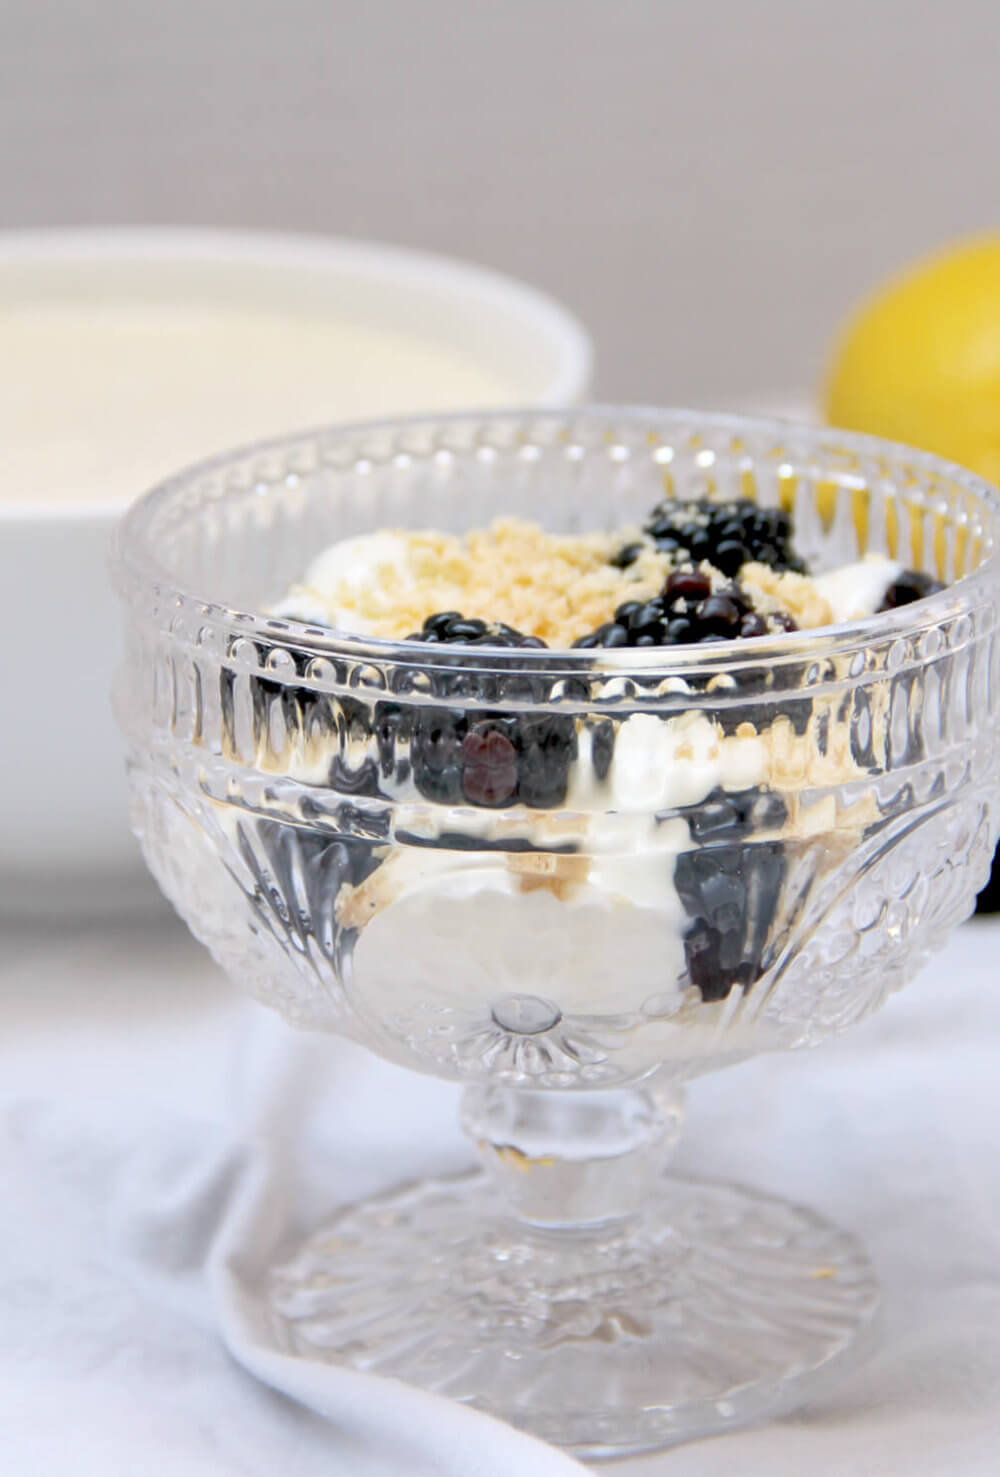 Lemon Cream is a quick and easy creamy dessert that can be spread on cookies, used as a pastry filling, or as a simple treat with fresh berries.